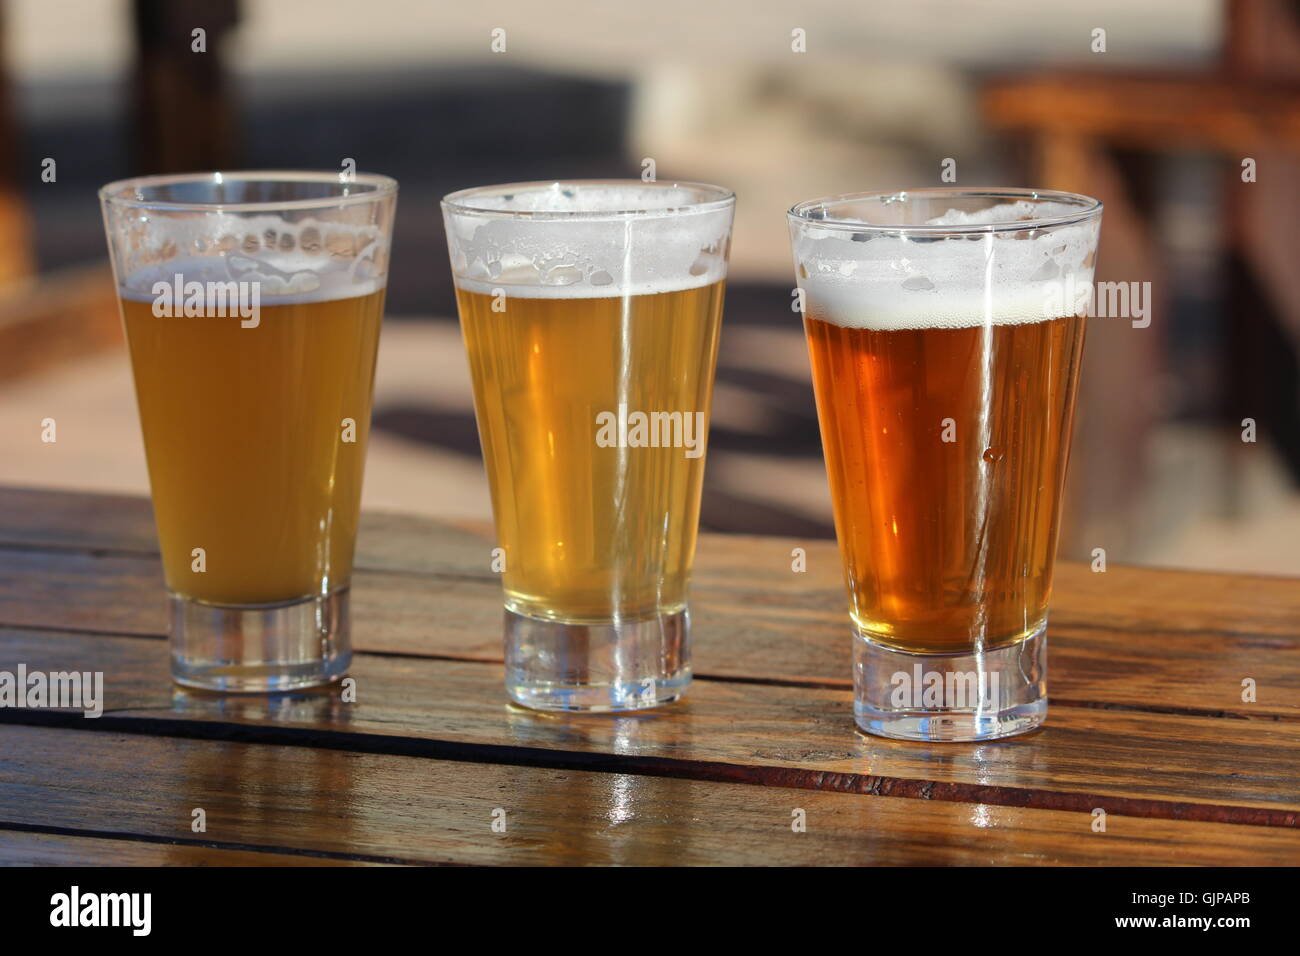 A selection of three craft beers during a tasting session on a wooden table - Stock Image